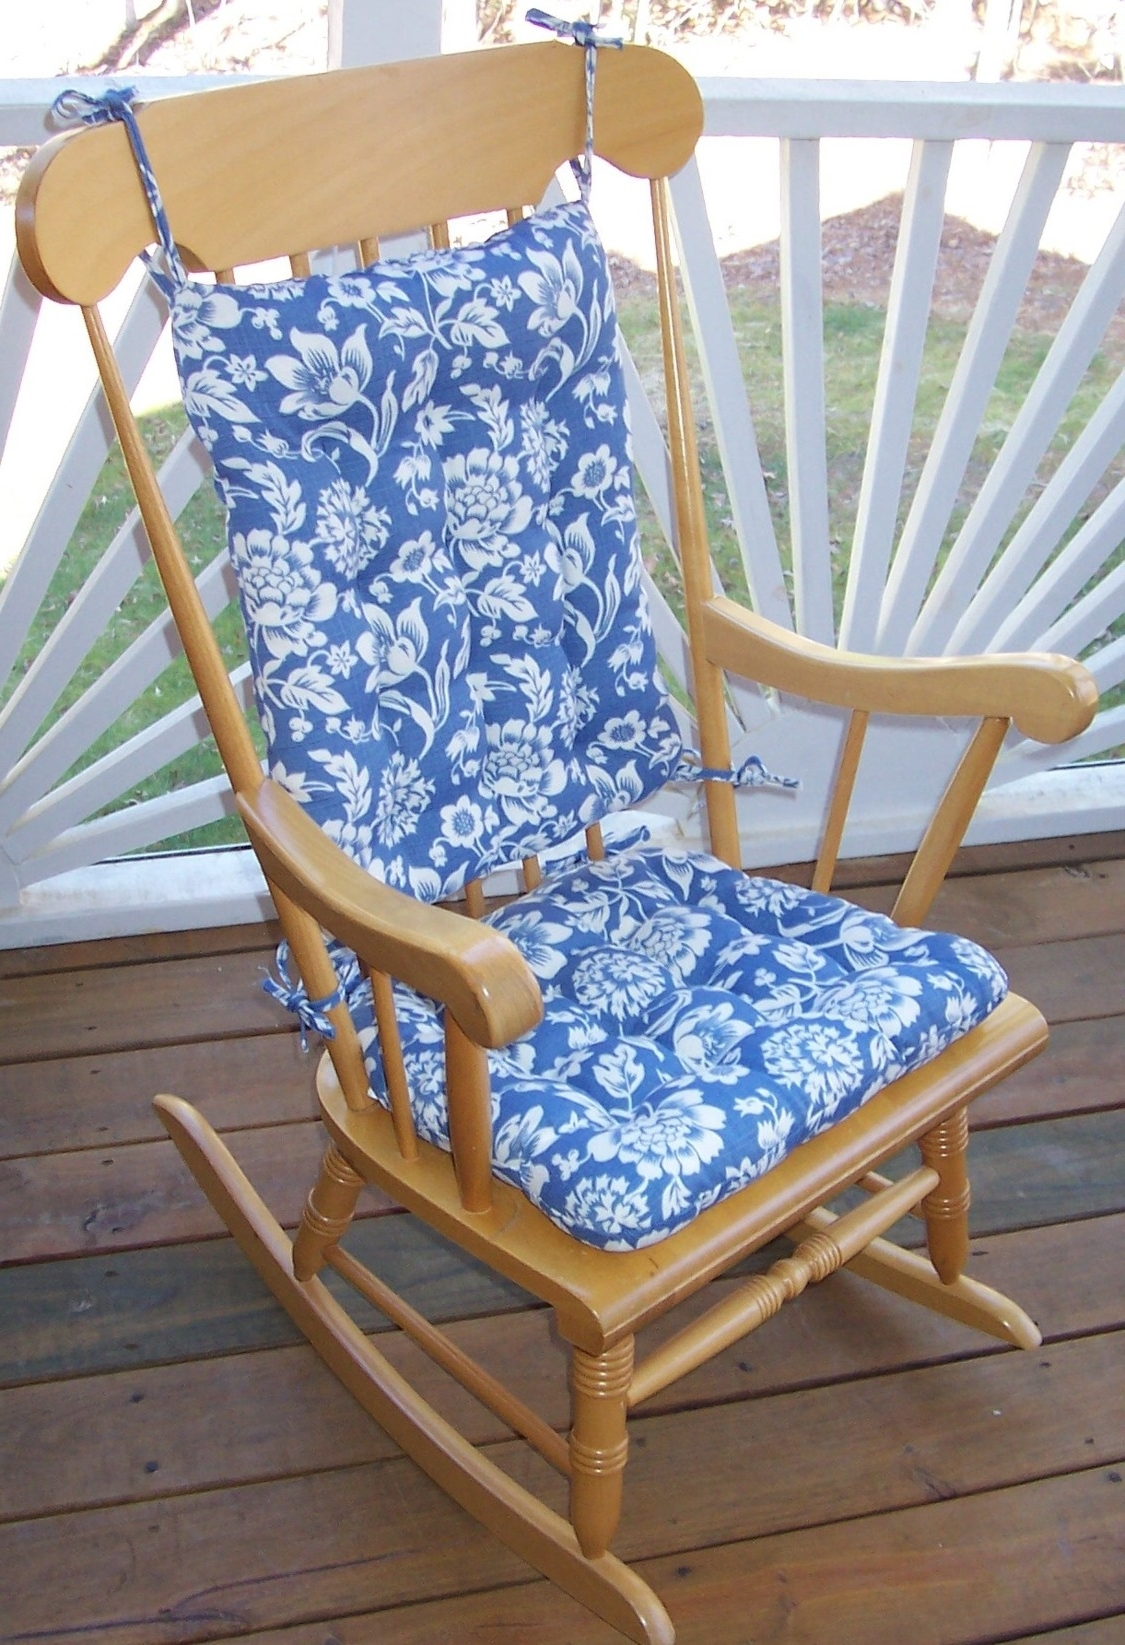 Fashionable Outdoor Rocking Chair Cushions Pattern : Beautiful Outdoor Rocking With Regard To Rocking Chair Cushions For Outdoor (View 4 of 15)